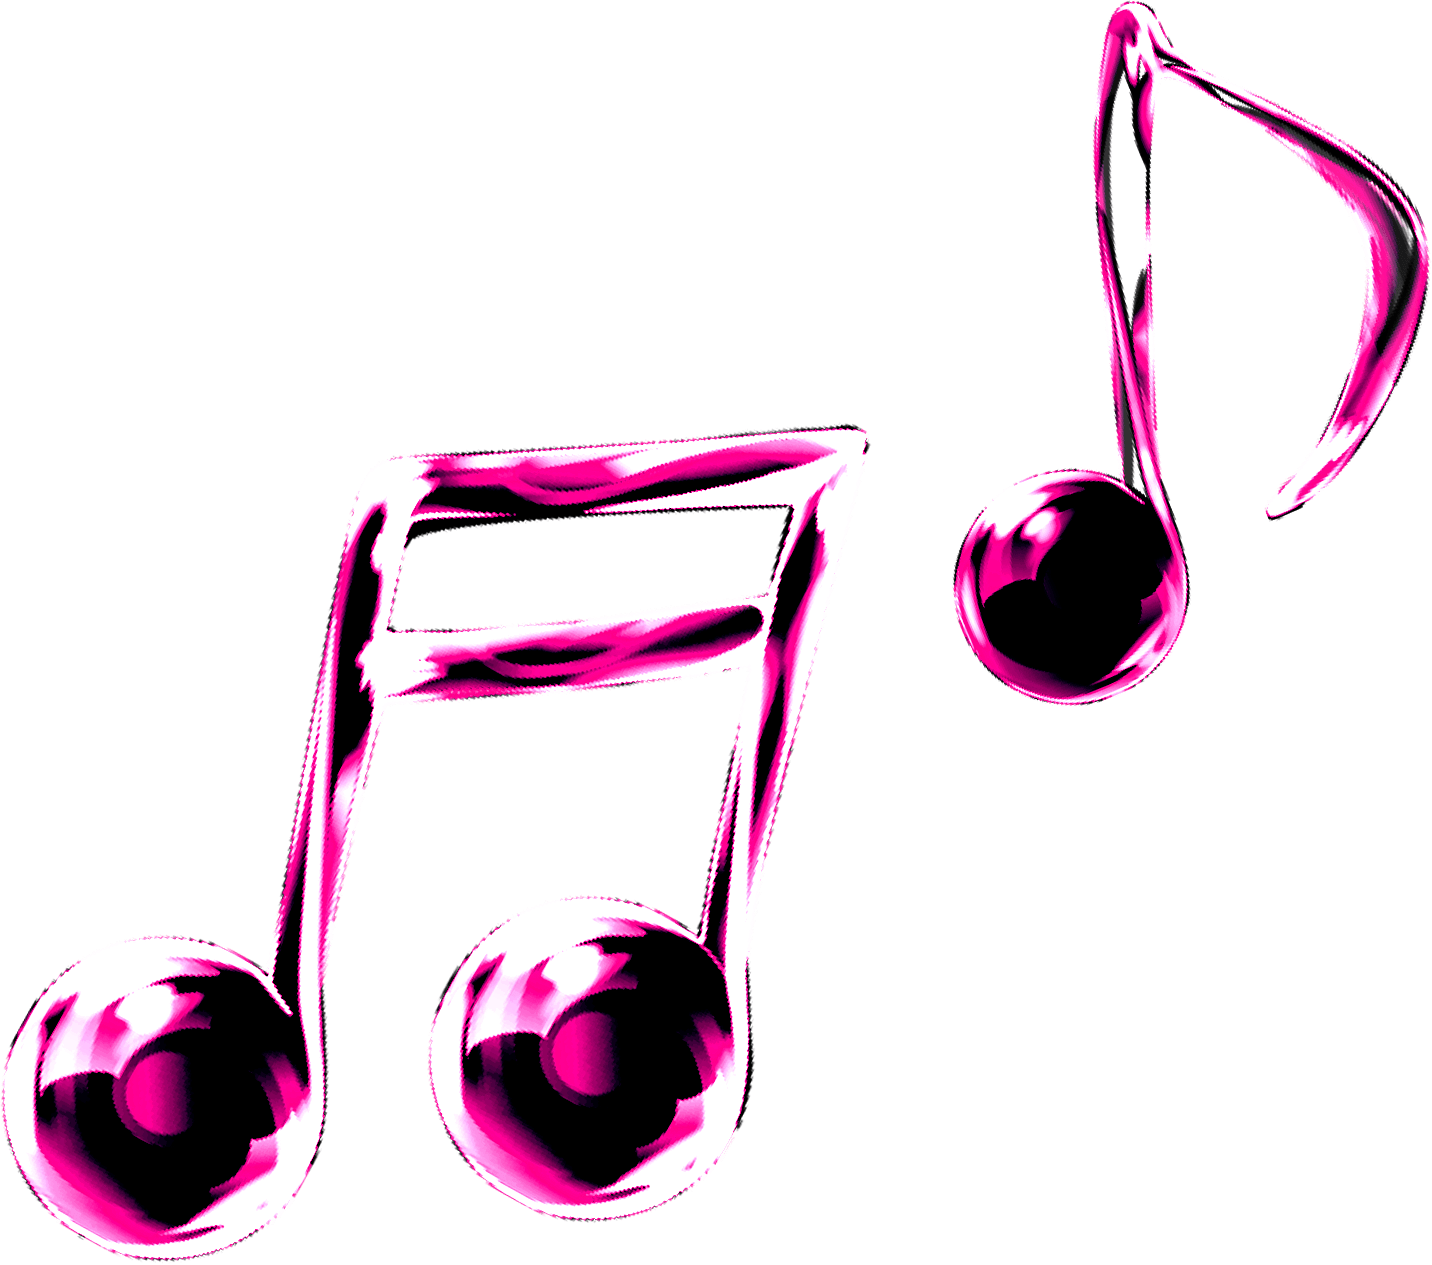 Clip Art With Symbols For Notes